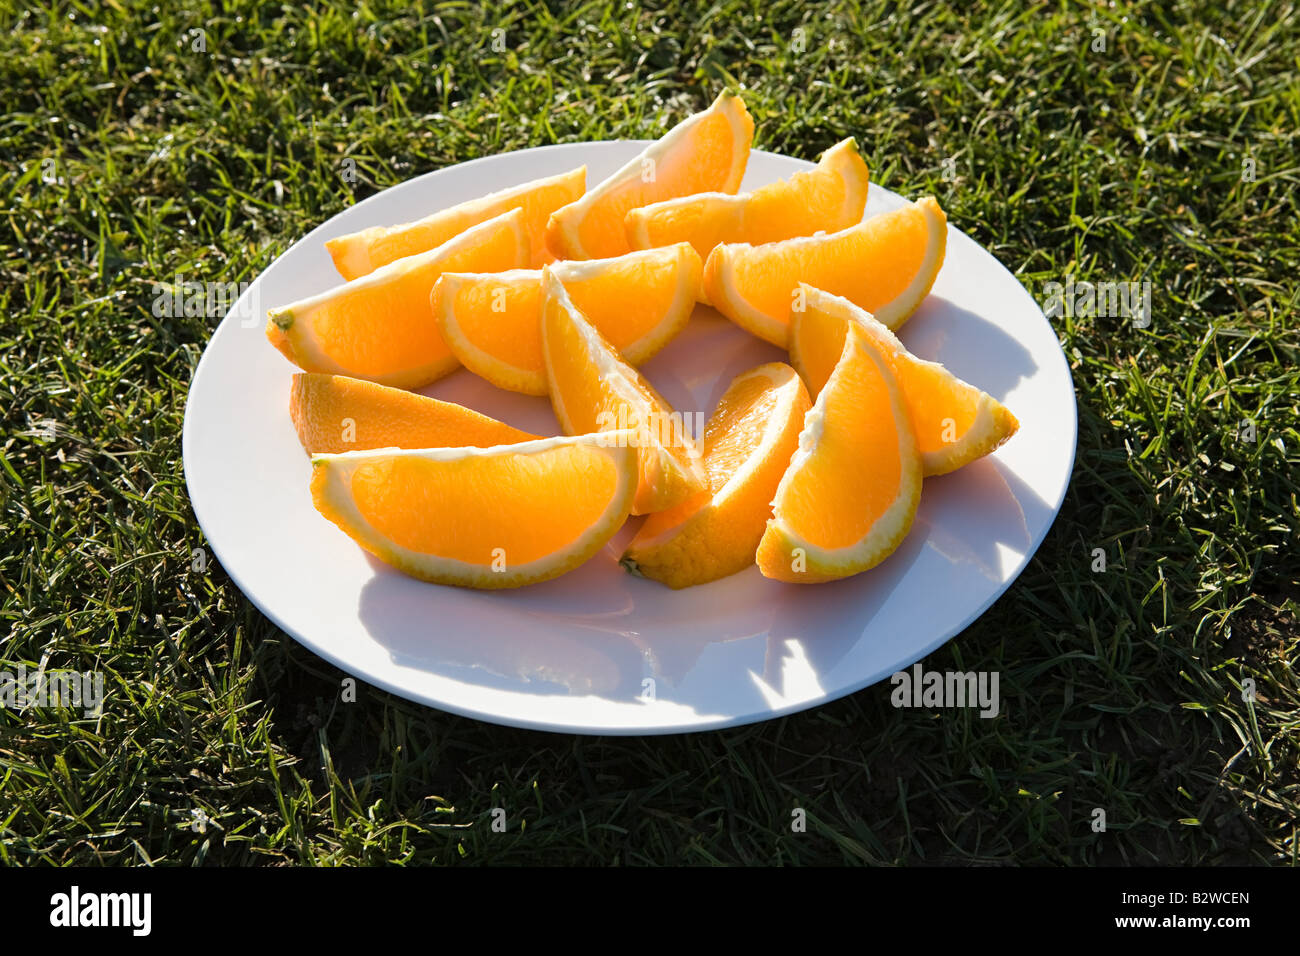 Slices of orange on a plate - Stock Image